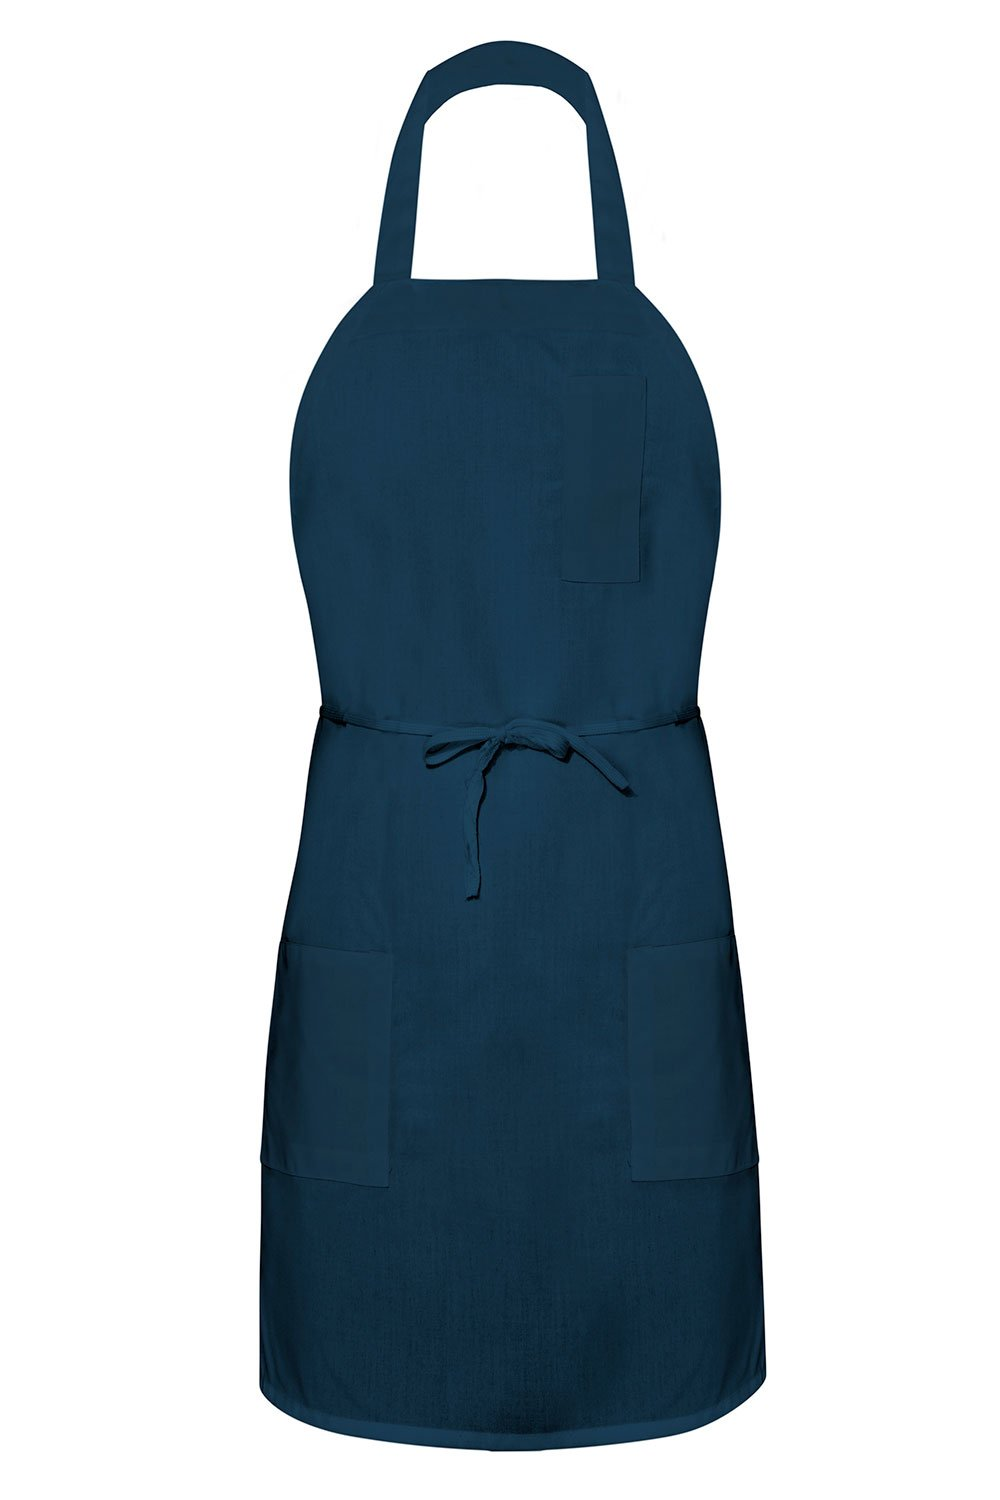 Navy Bib Apron (3 Pockets)